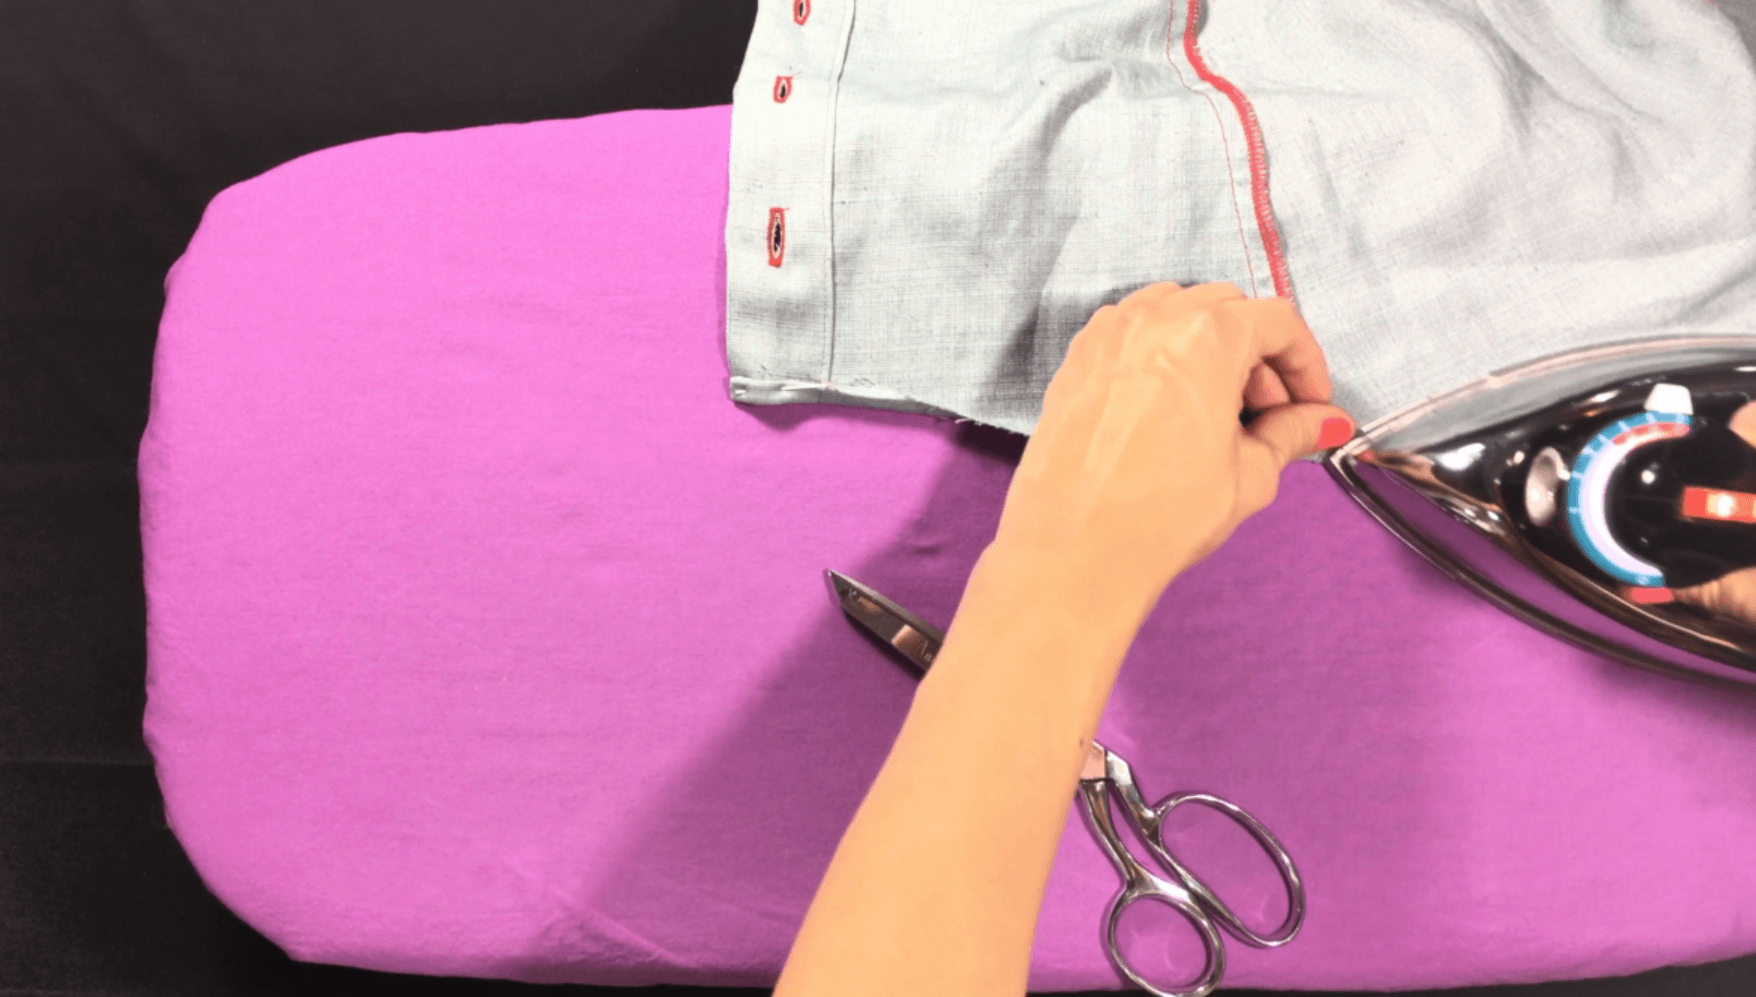 In today's video and written tutorial, I will teach you how to sew a curved shirt tail hem, here's a hint, its all in the hands :) Click through to watch and learn!